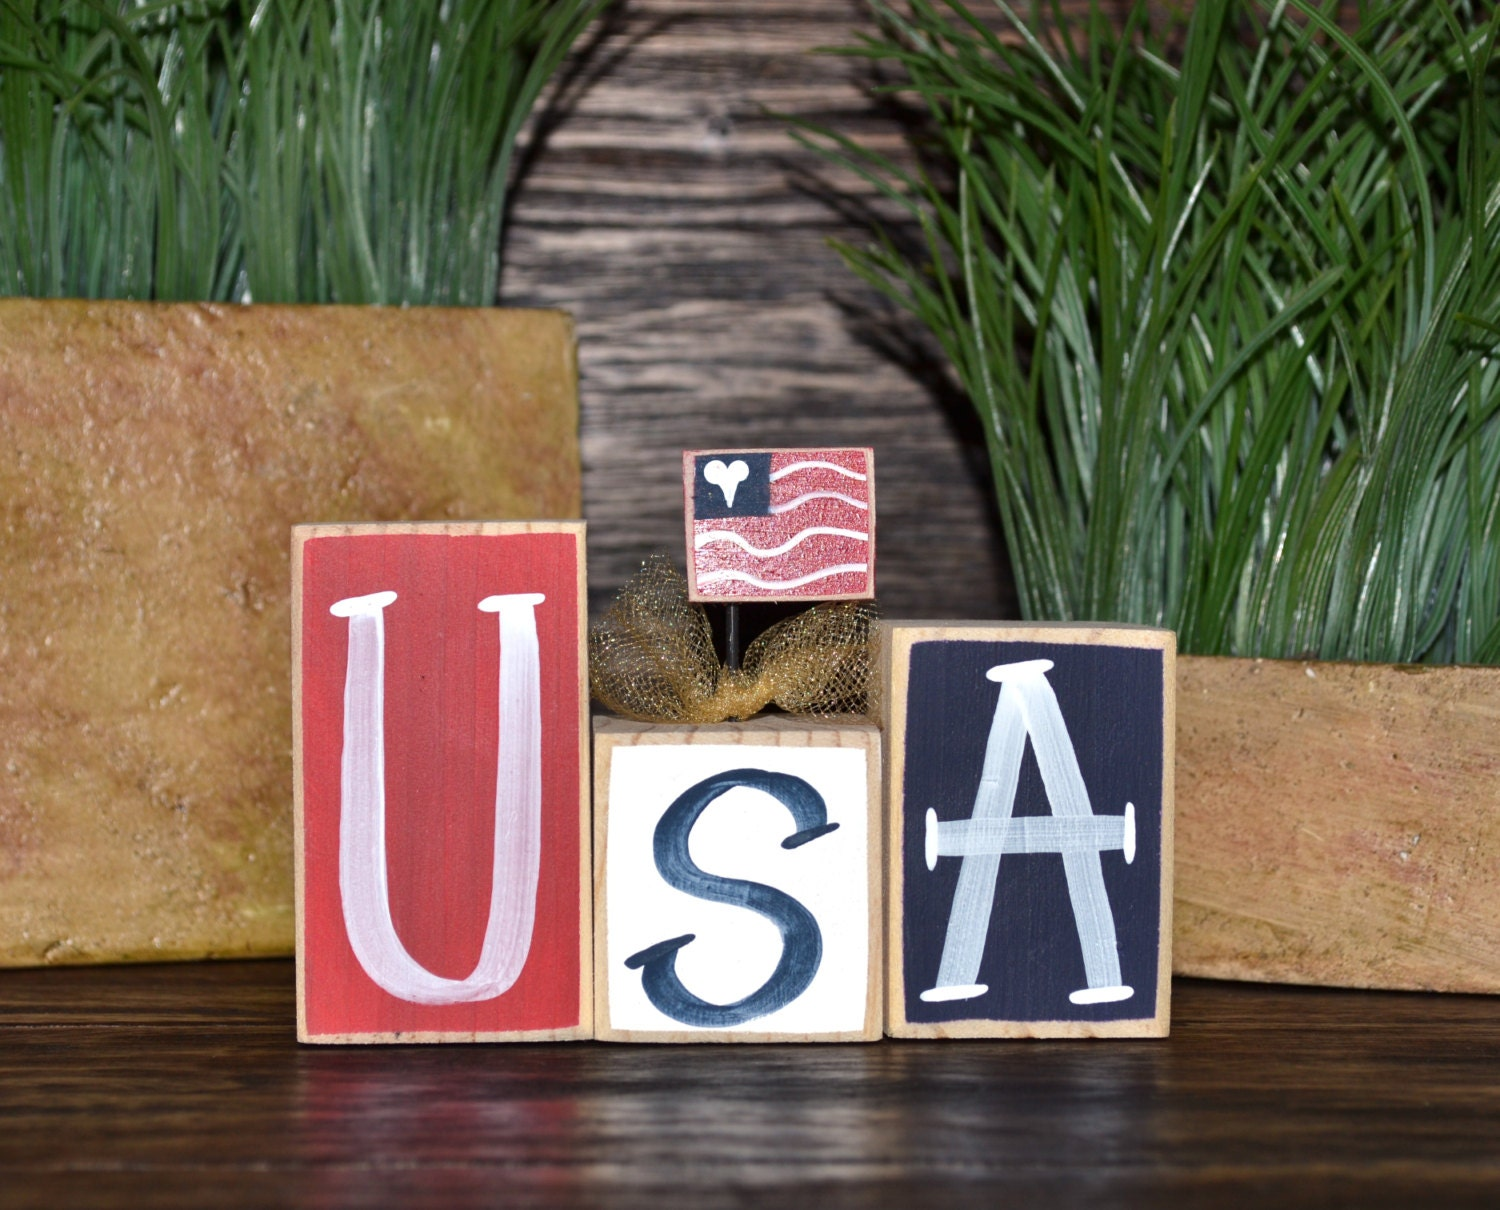 USA 4th of July Decor Patriotic Wood Block Set Independence Day Presidents Day Flag Americana Gift Military Mom Freedom Marines Army Navy - BlocksOfLove1